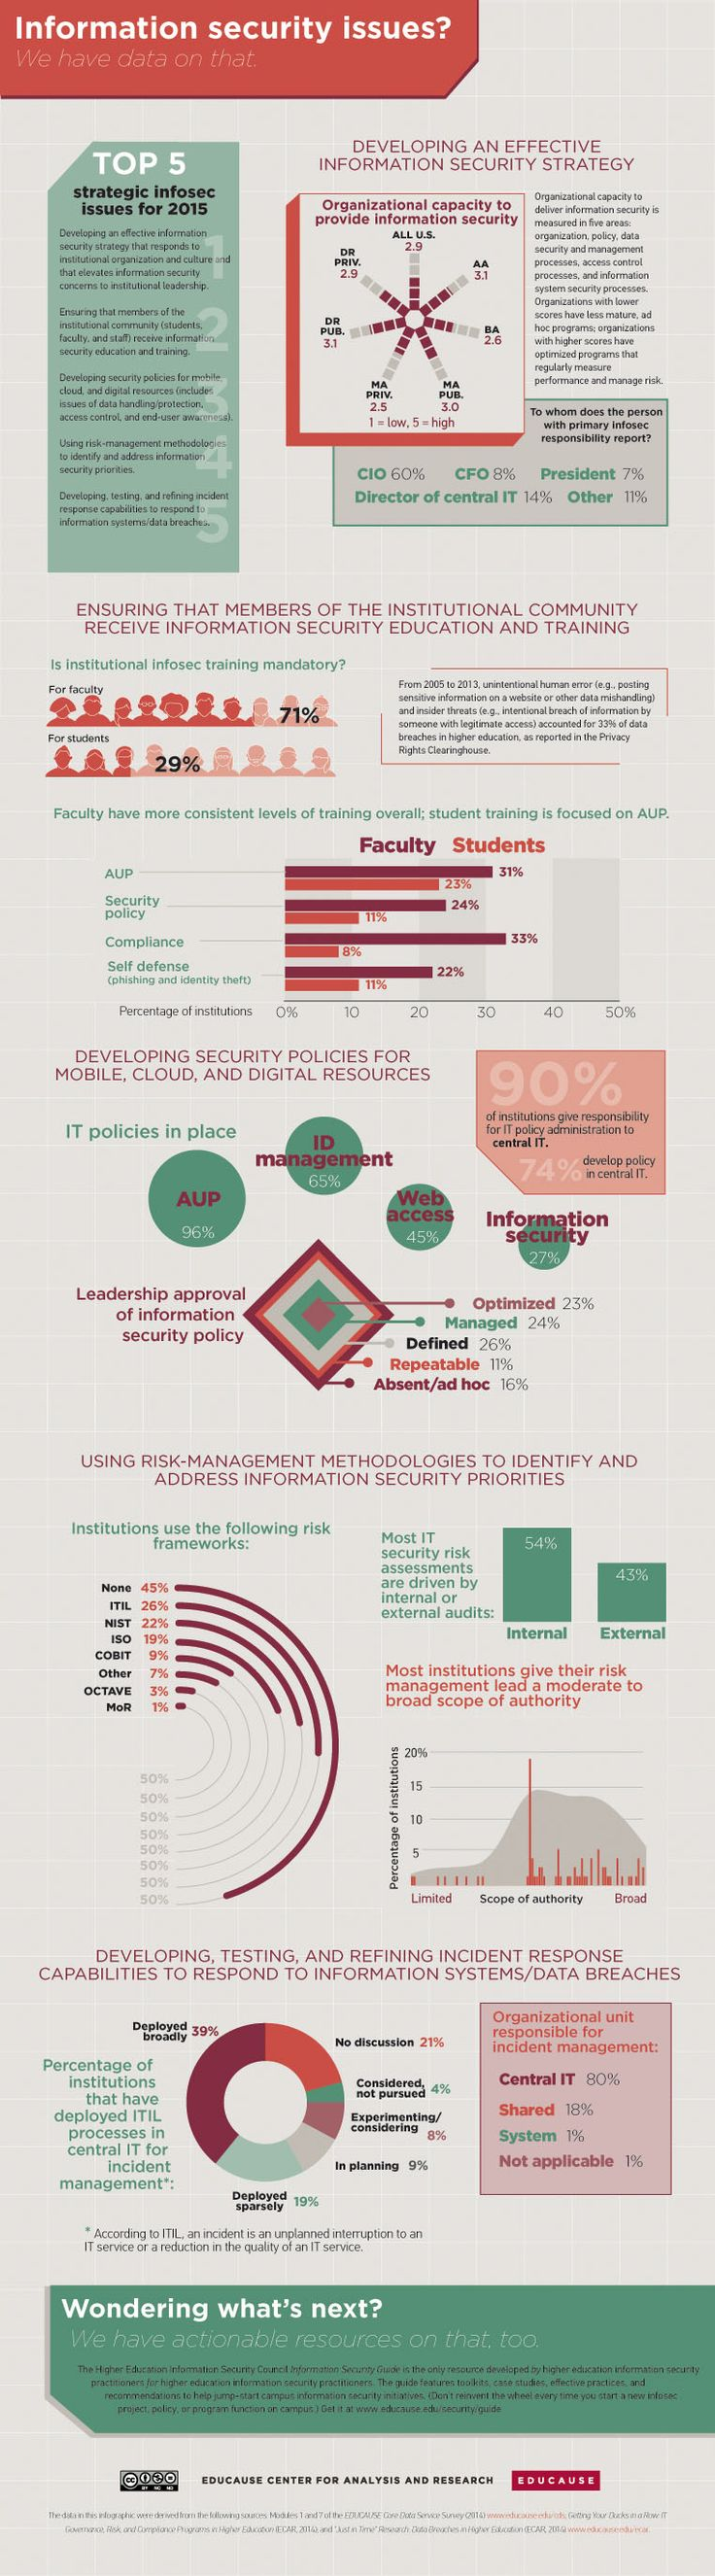 2015 Top 5 Higher Ed Infosec Issues Infographic - http://elearninginfographics.com/2015-top-5-higher-ed-infosec-issues-infographic/